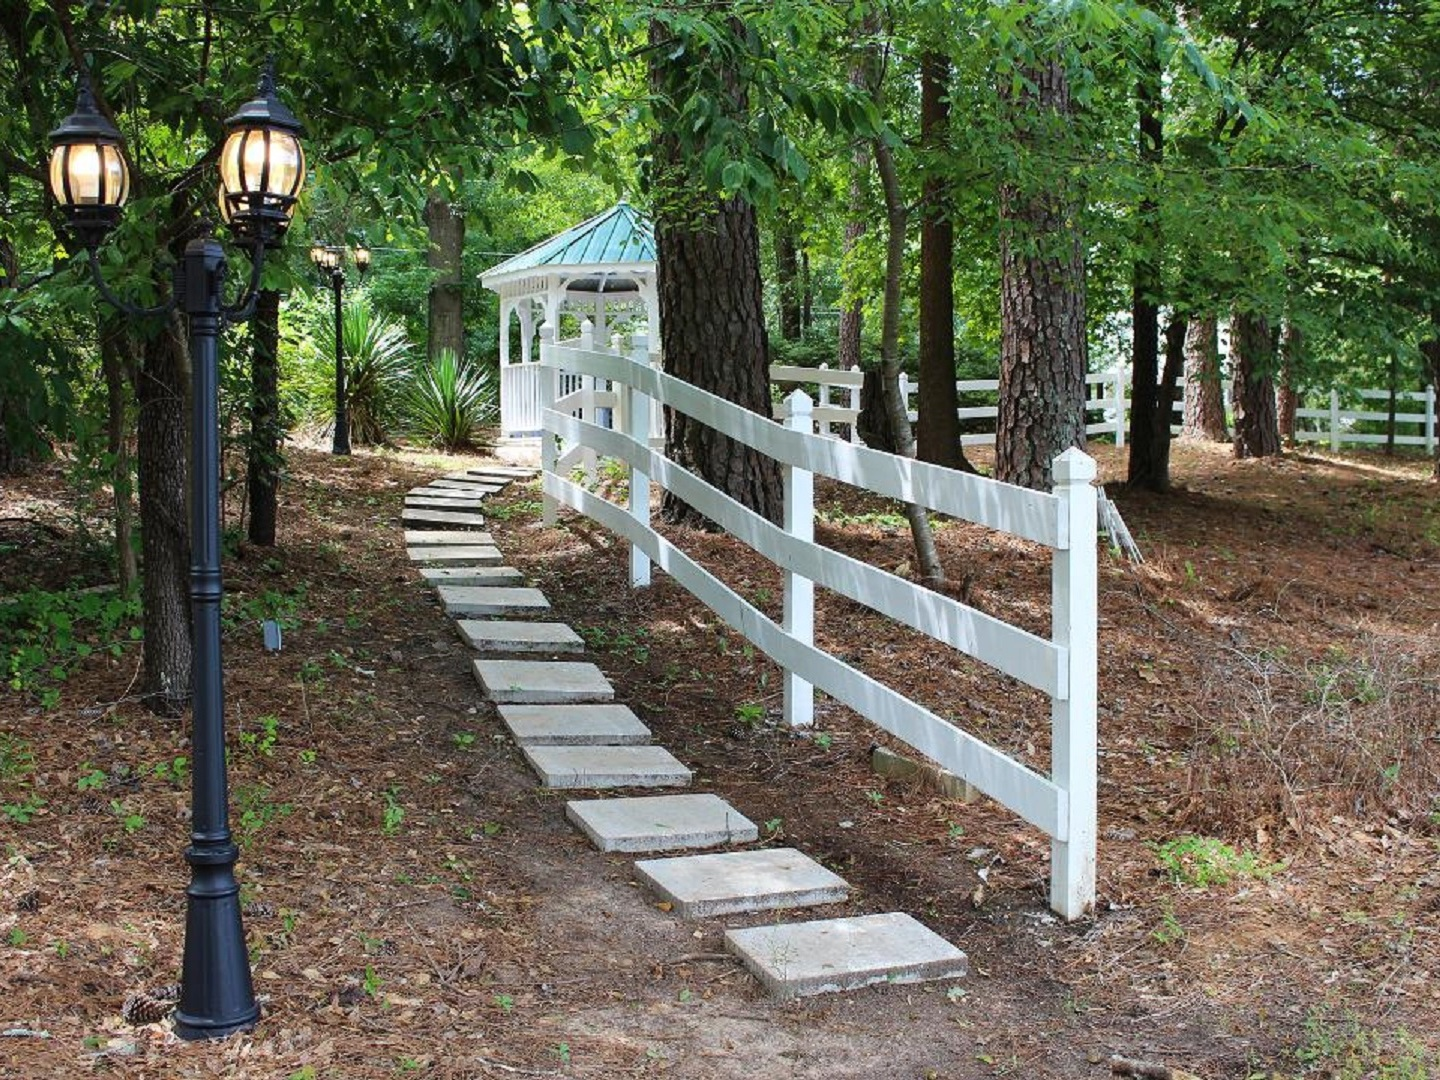 A path with trees on the side of a fence at Stockbridge Lakes Bed & Breakfast.